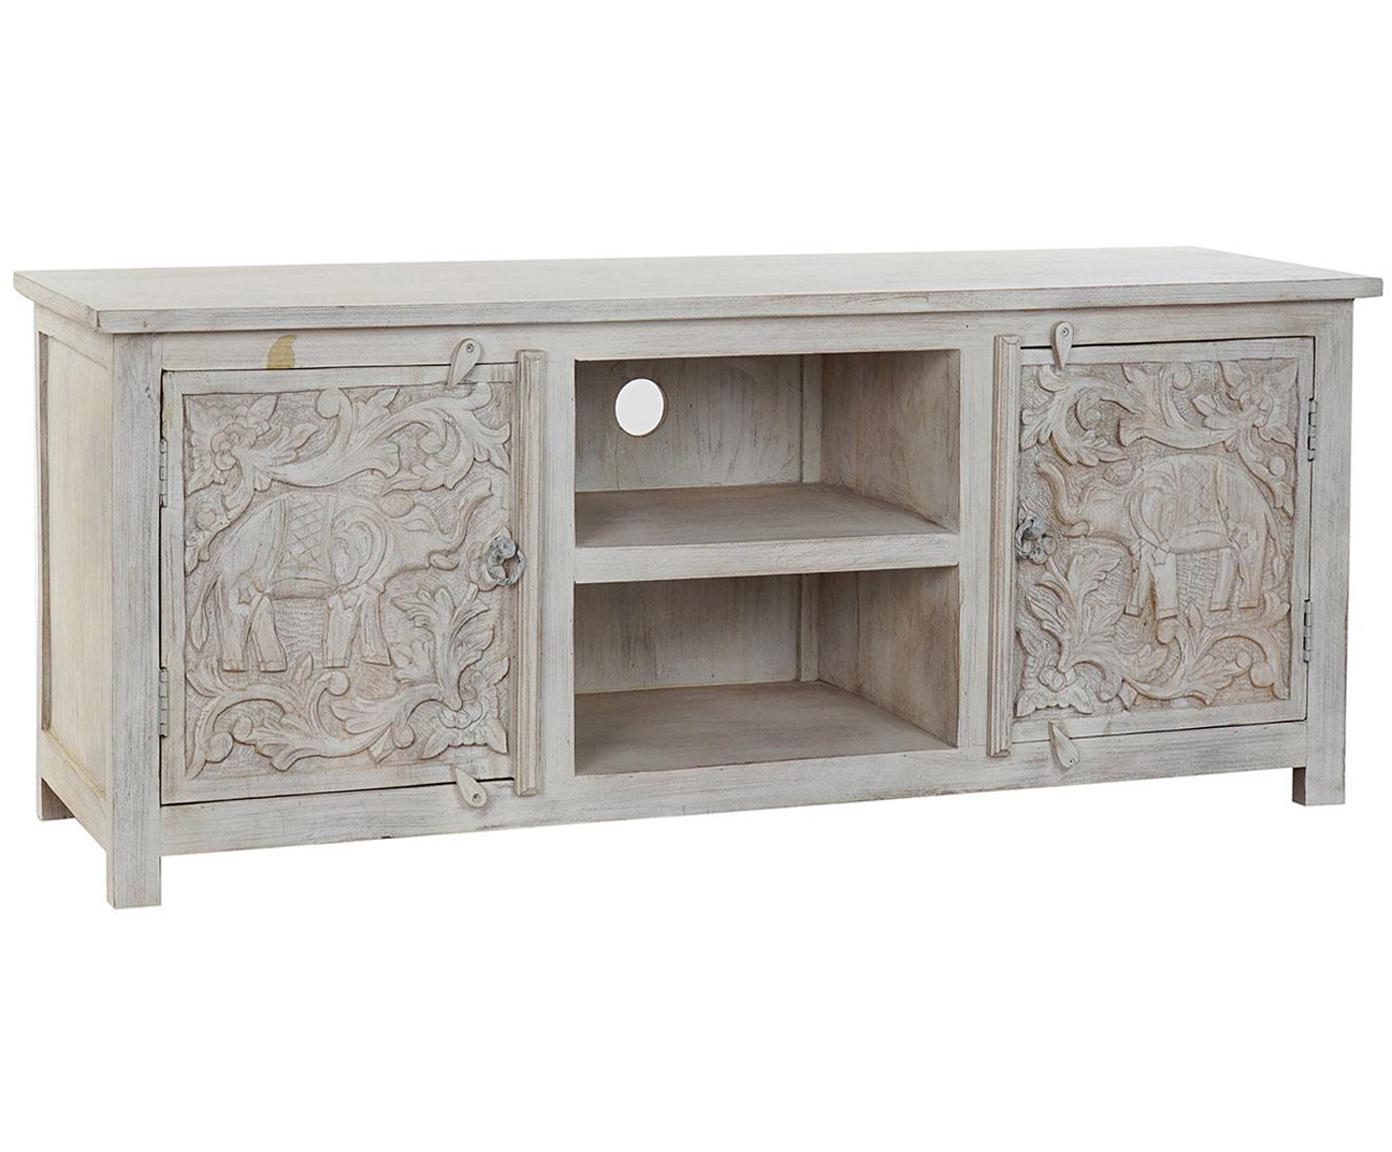 Mueble TV Elefante, Blanco, An 151 x Al 60 cm